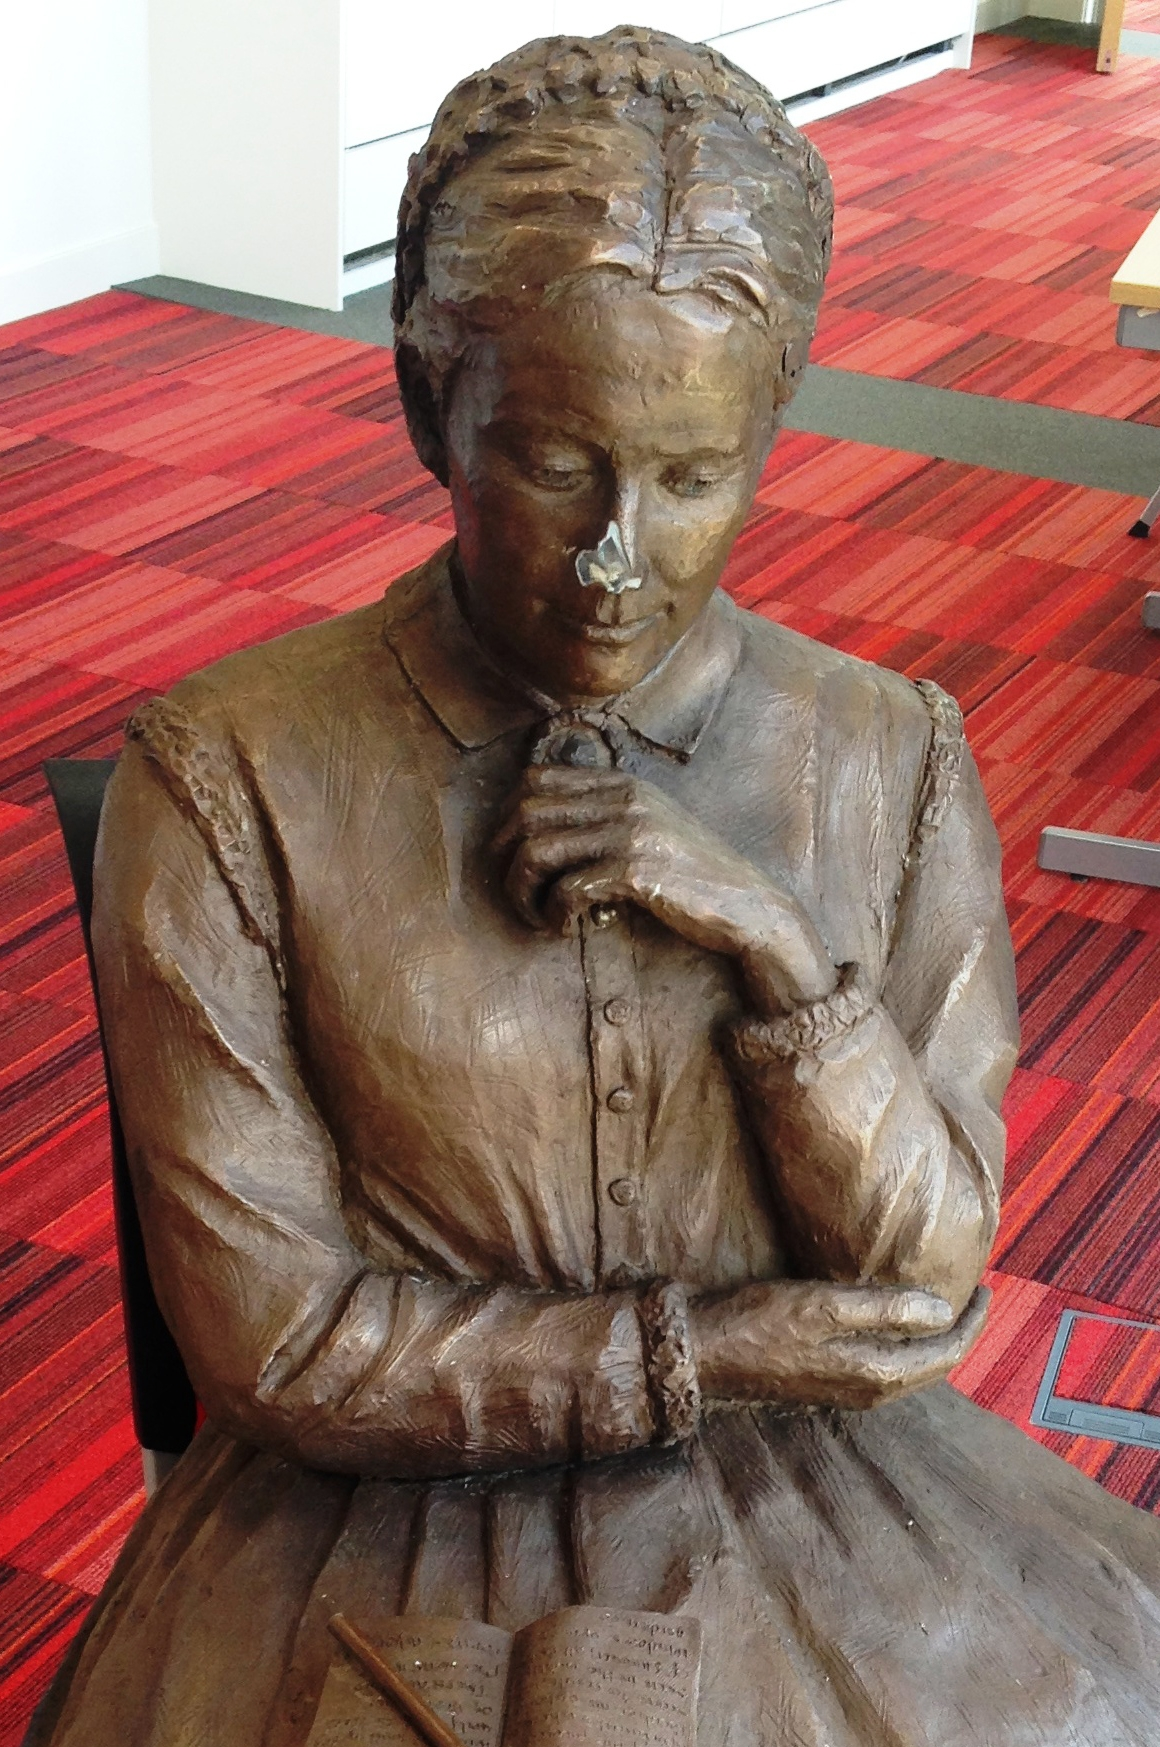 Thugs damage £25,000 sculpture of novelist who named town